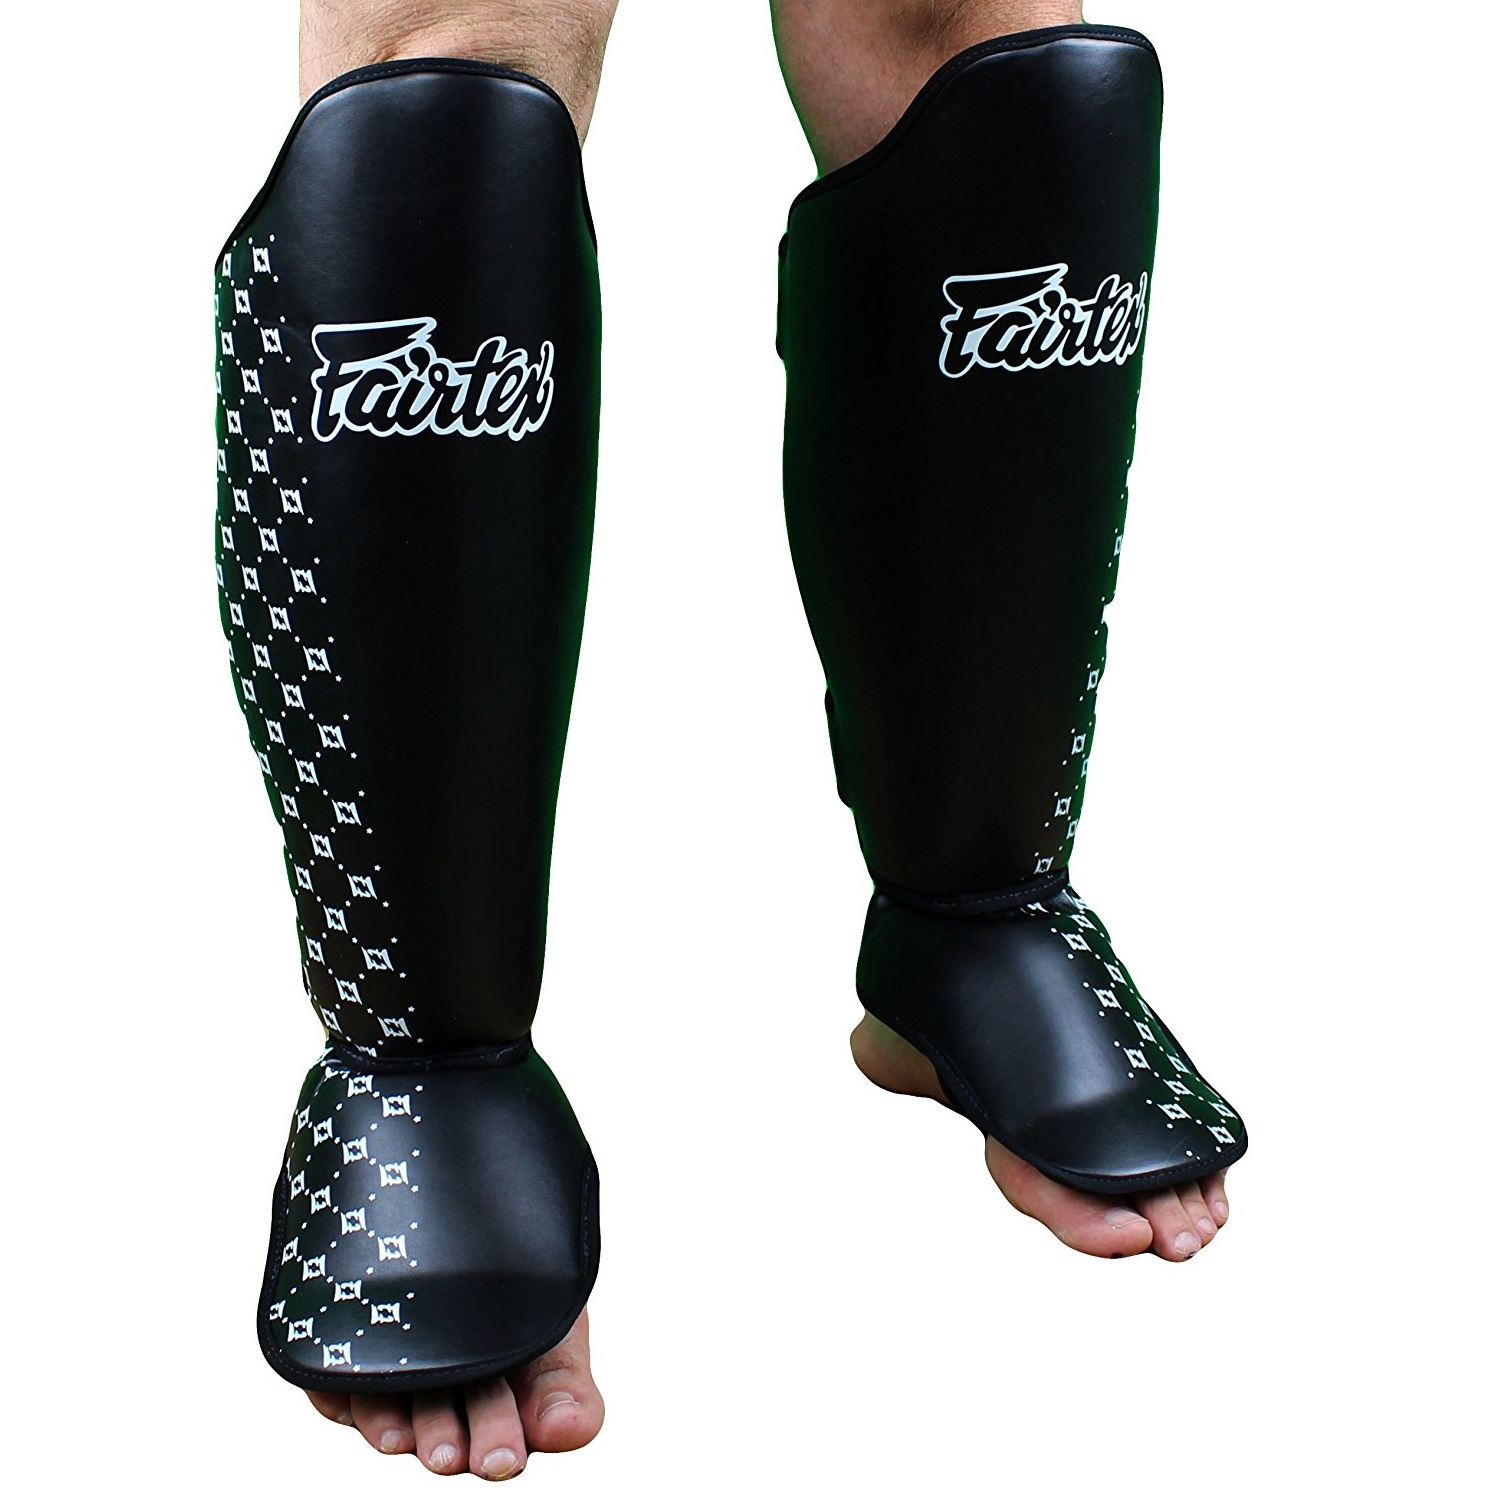 Fairtex Competition Muay Thai Shin Guards